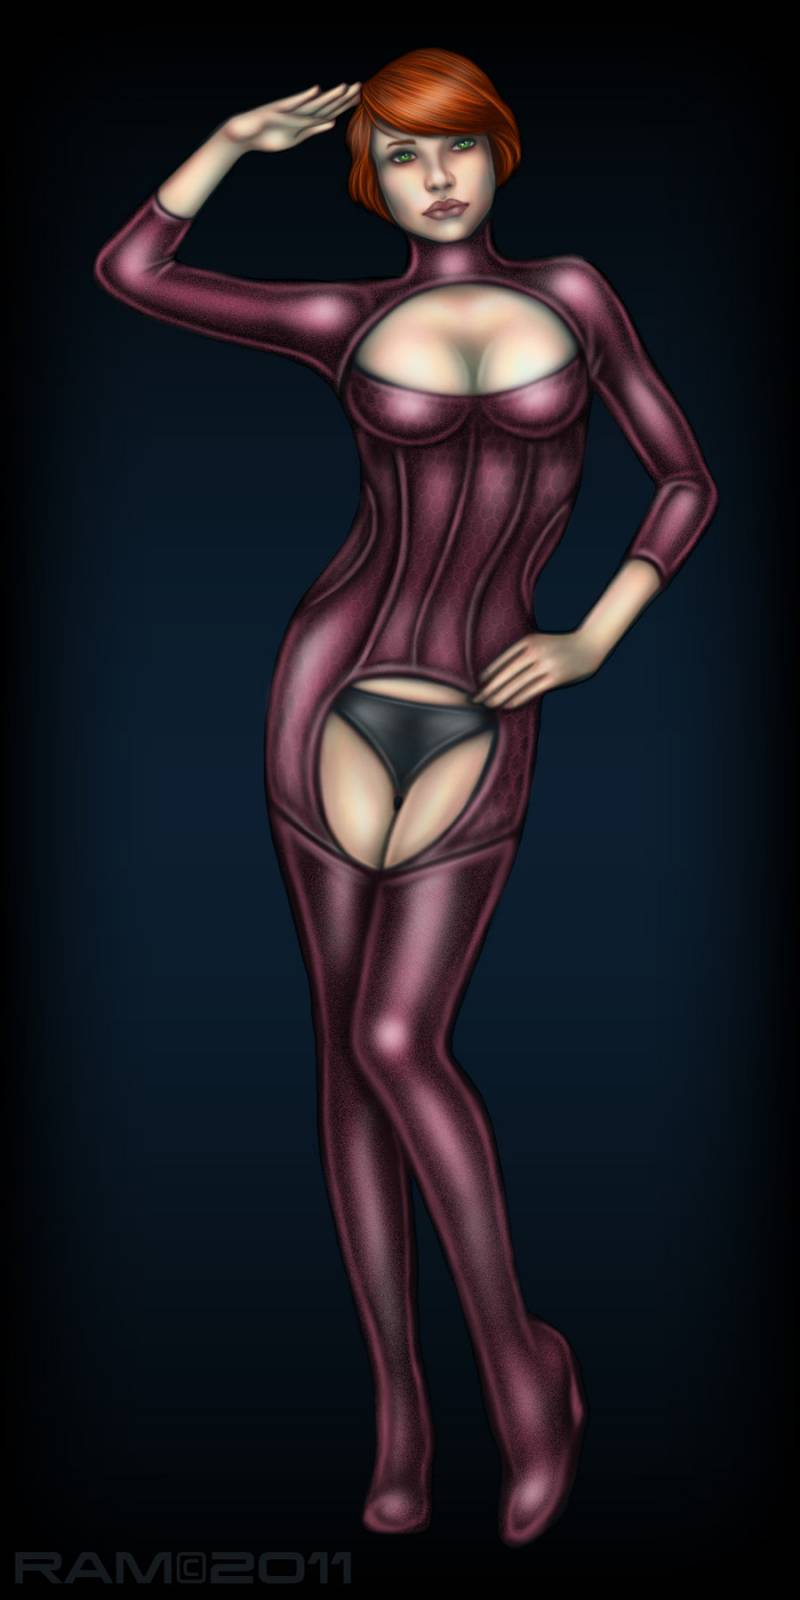 Mass effect 2 - nude kelly hentai photo